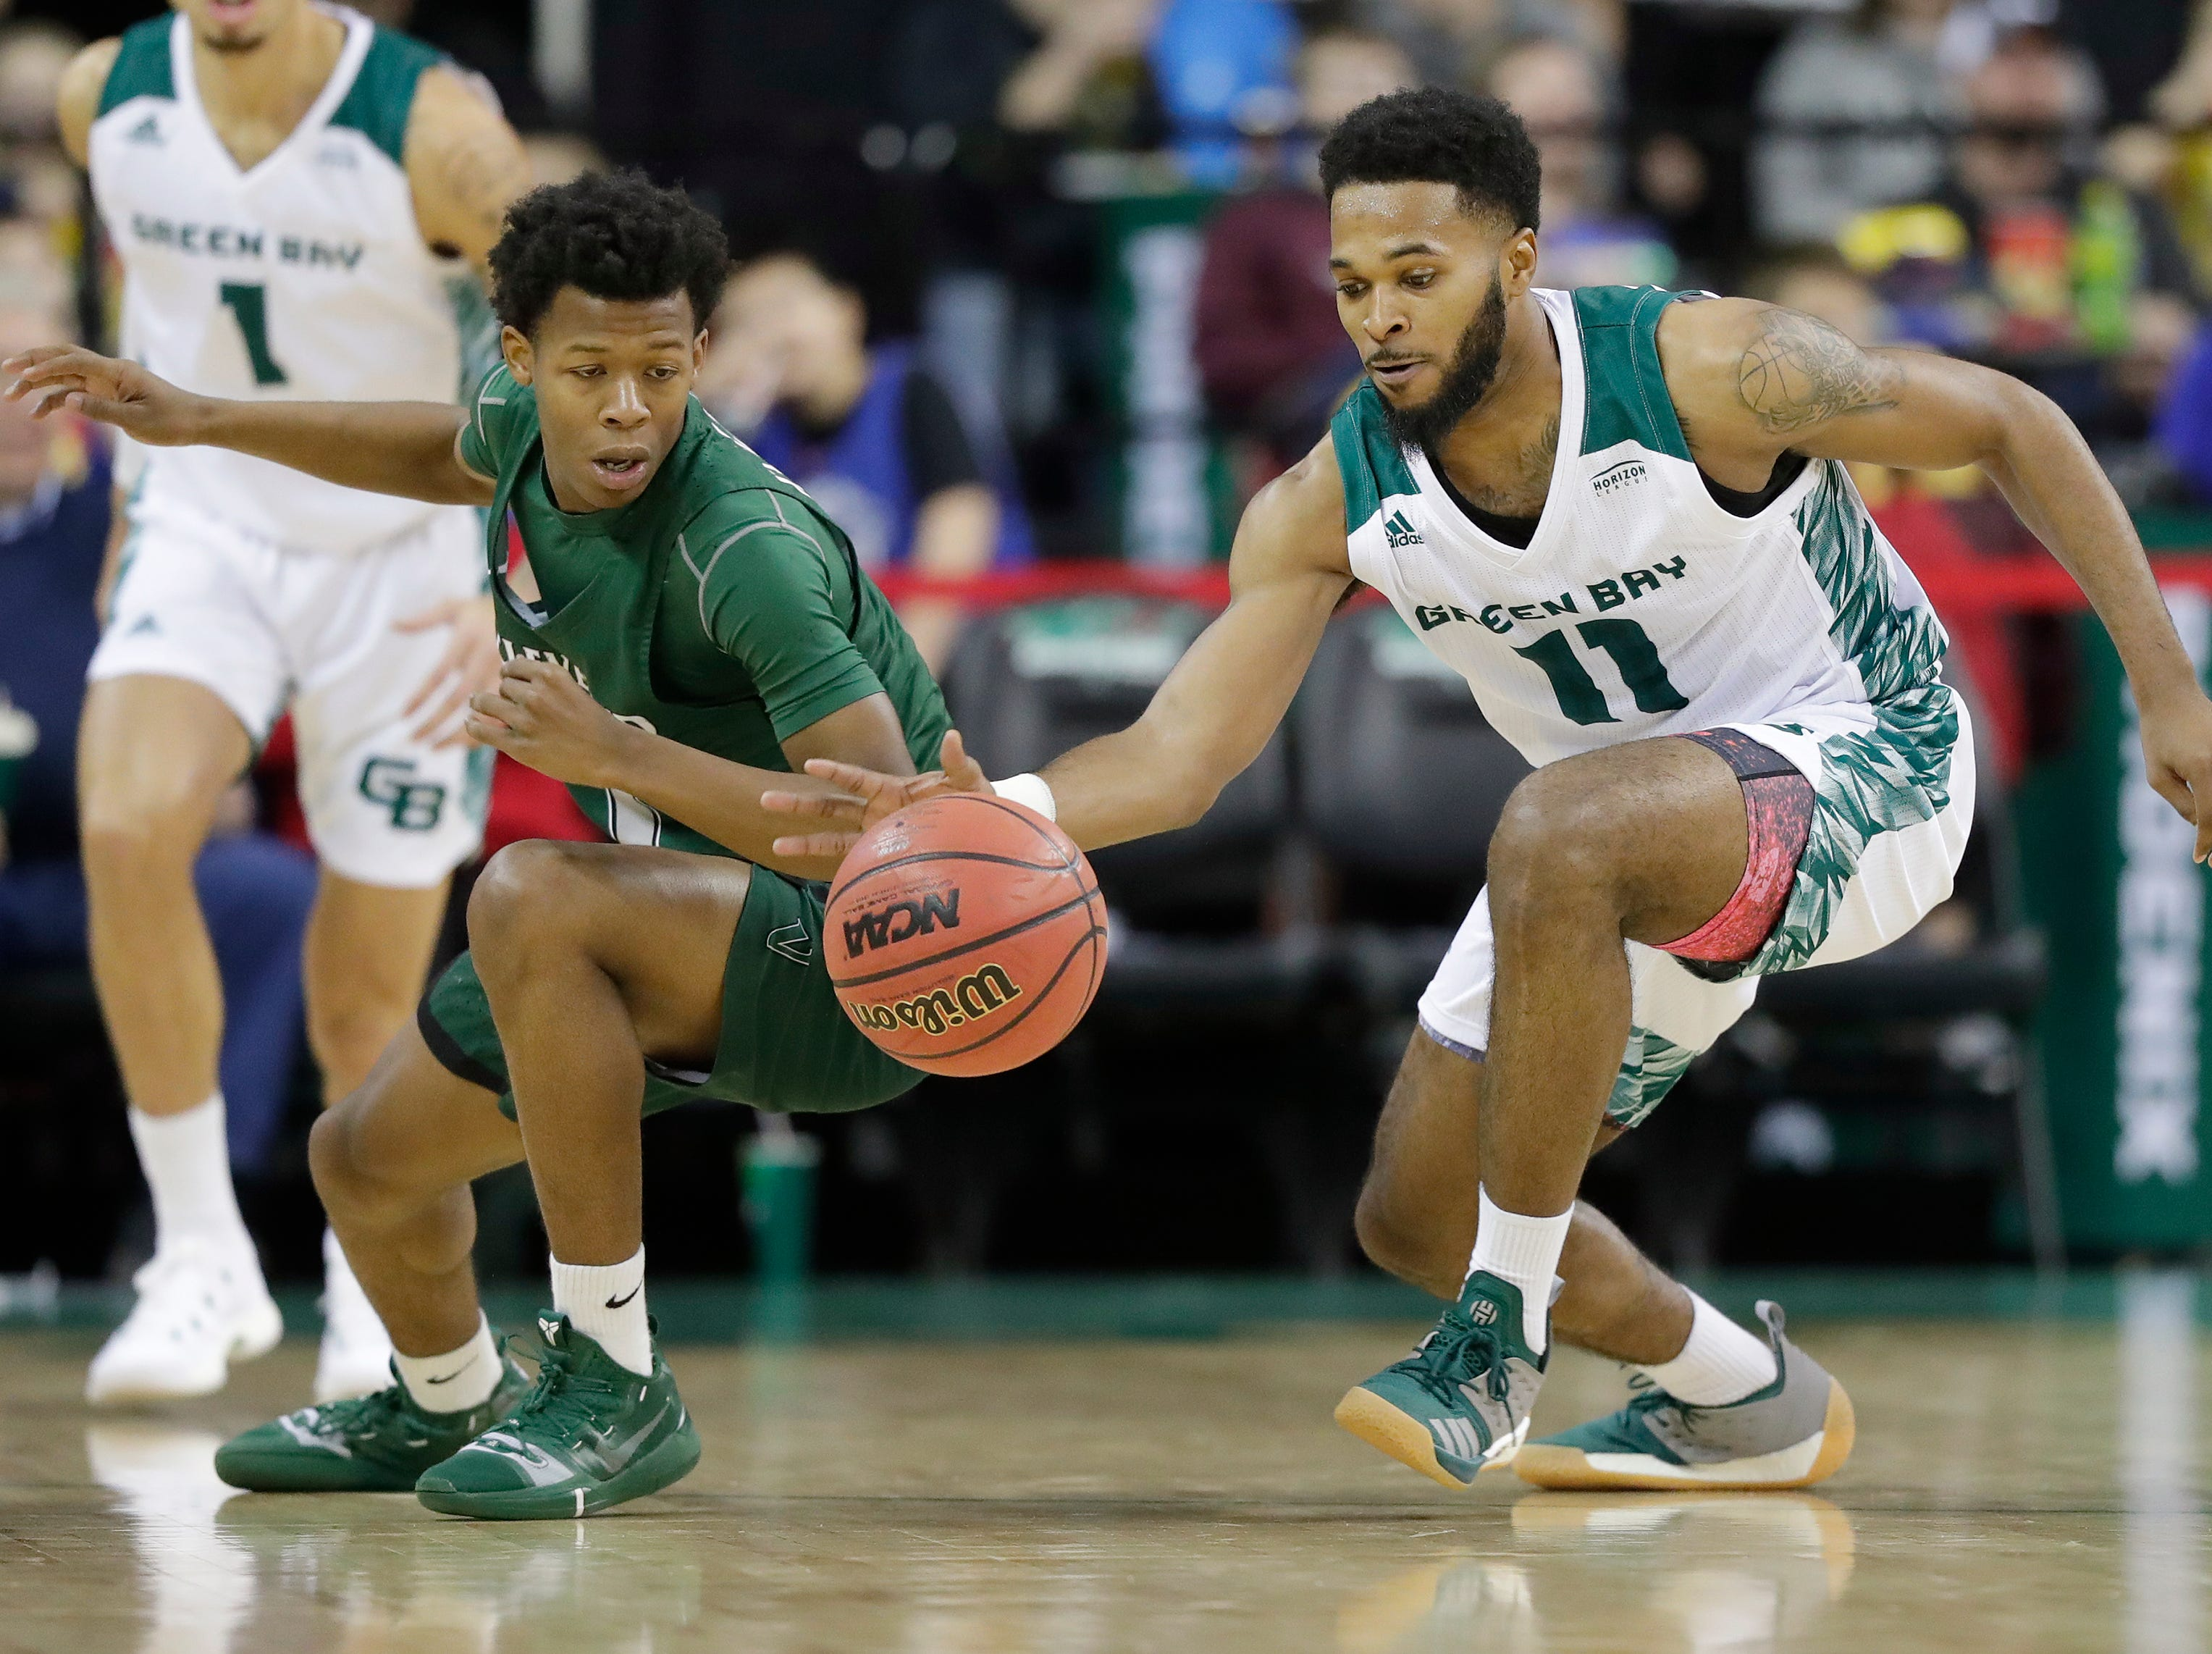 Green Bay Phoenix guard JayQuan McCloud (11) attempts a steal against Cleveland State Vikings guard Tyree Appleby (1) in a Horizon League basketball game at the Resch Center on Saturday, January 5, 2019 in Green Bay, Wis.